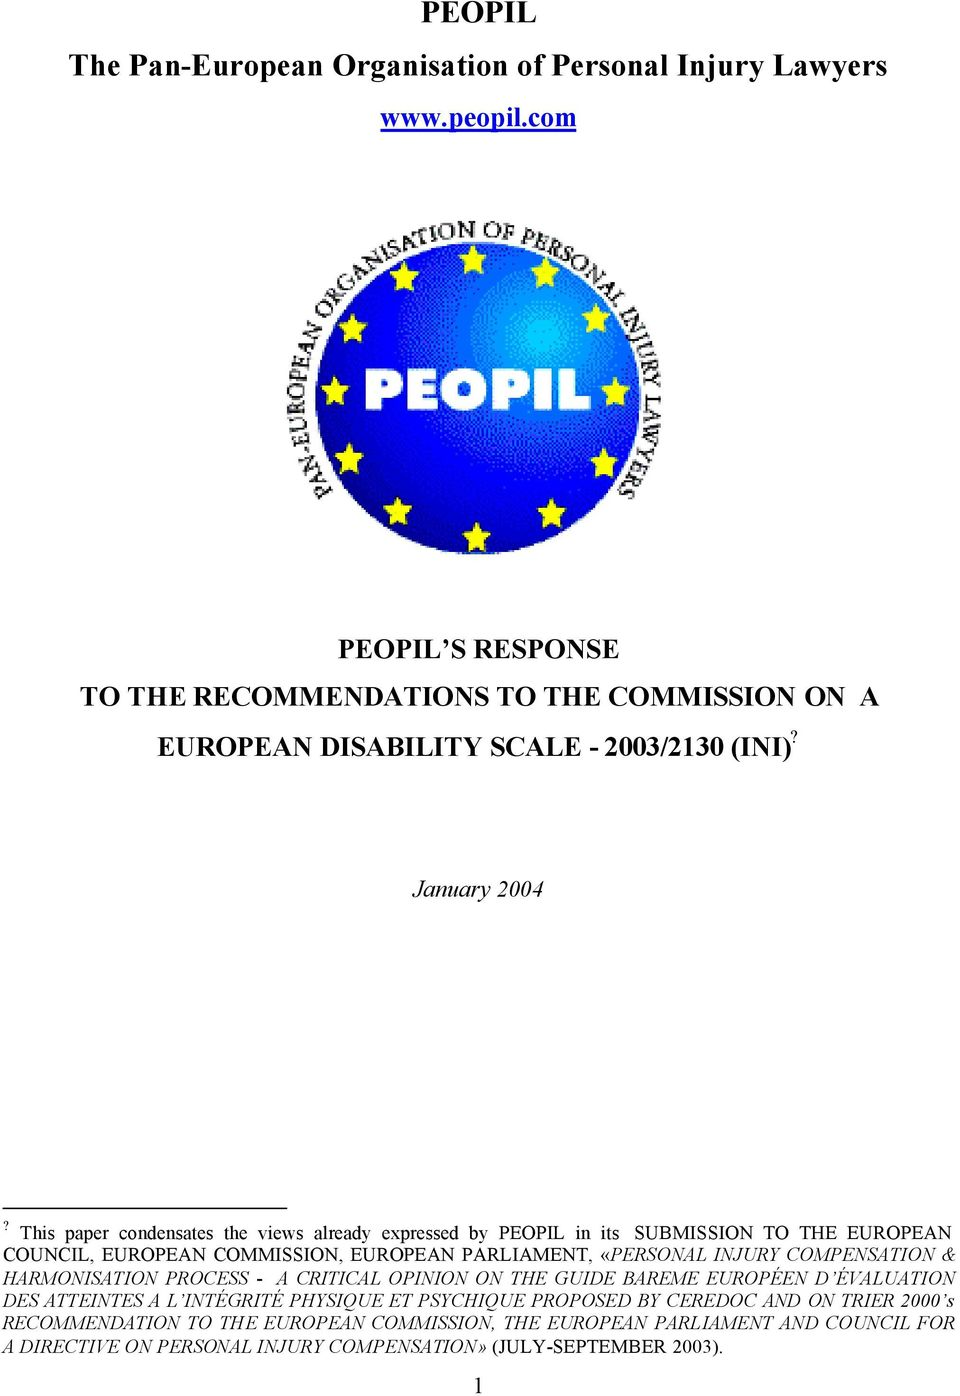 This paper condensates the views already expressed by PEOPIL in its SUBMISSION TO THE EUROPEAN COUNCIL, EUROPEAN COMMISSION, EUROPEAN PARLIAMENT, «PERSONAL INJURY COMPENSATION